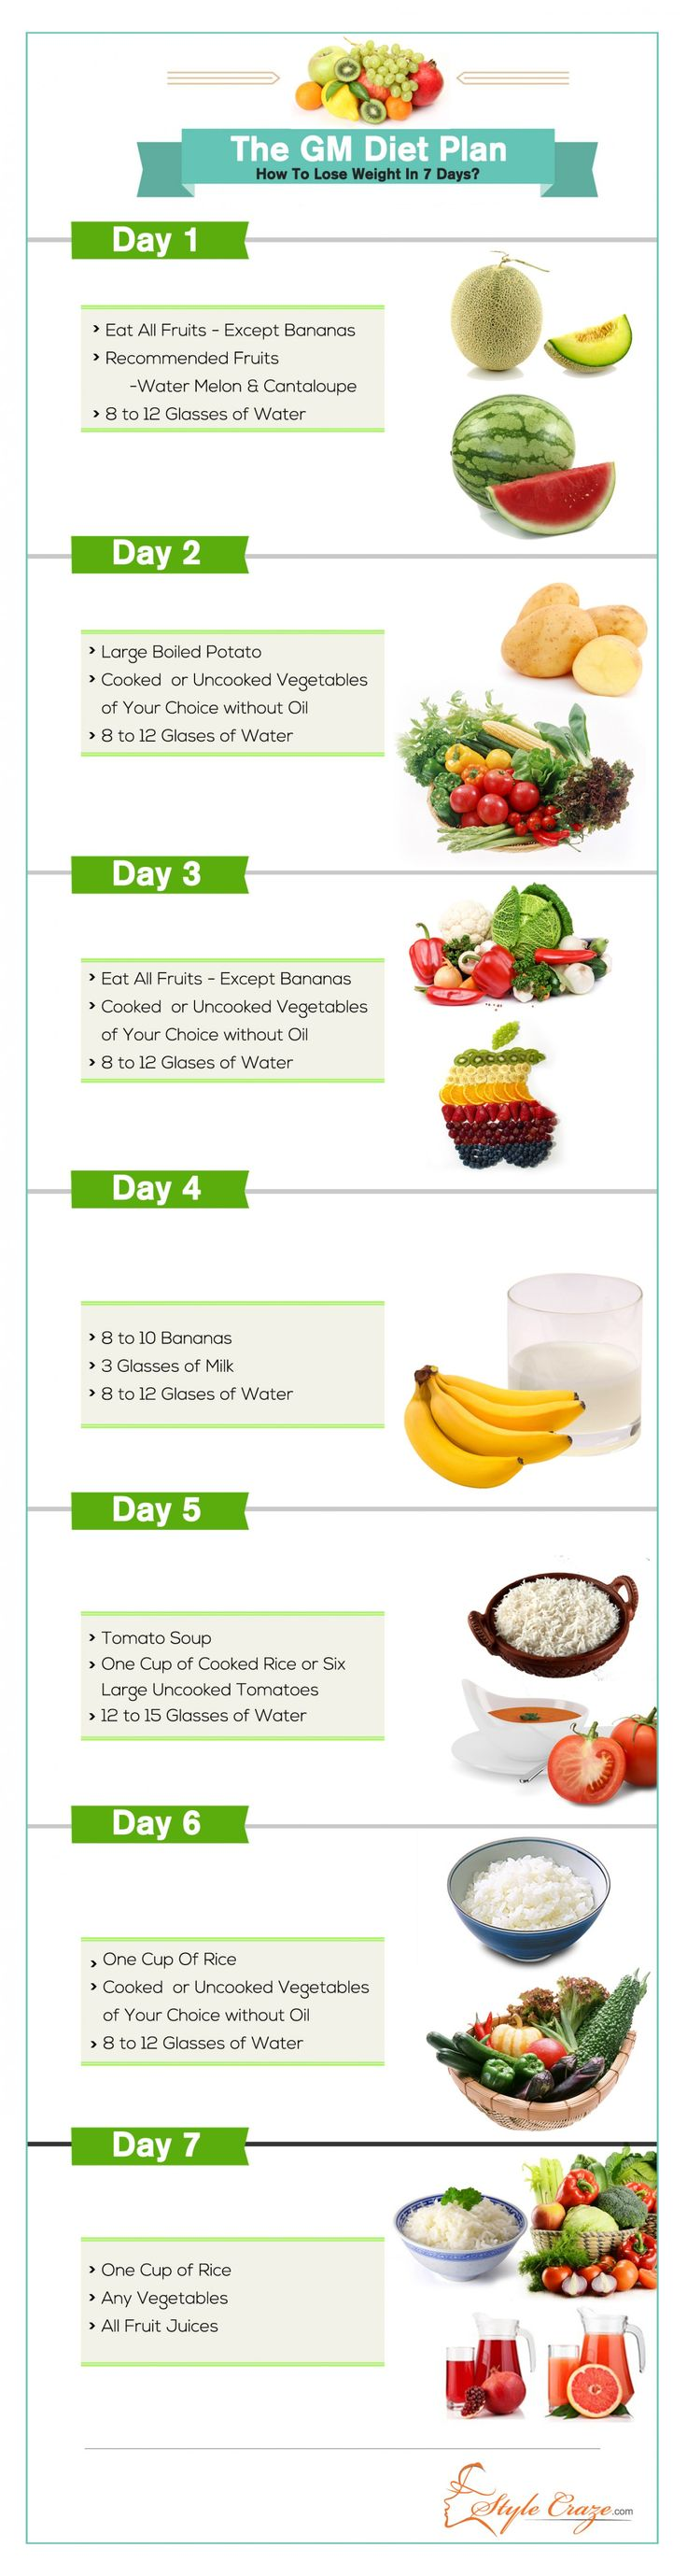 Gm Diet How To Lose Weight In 7 Days Love